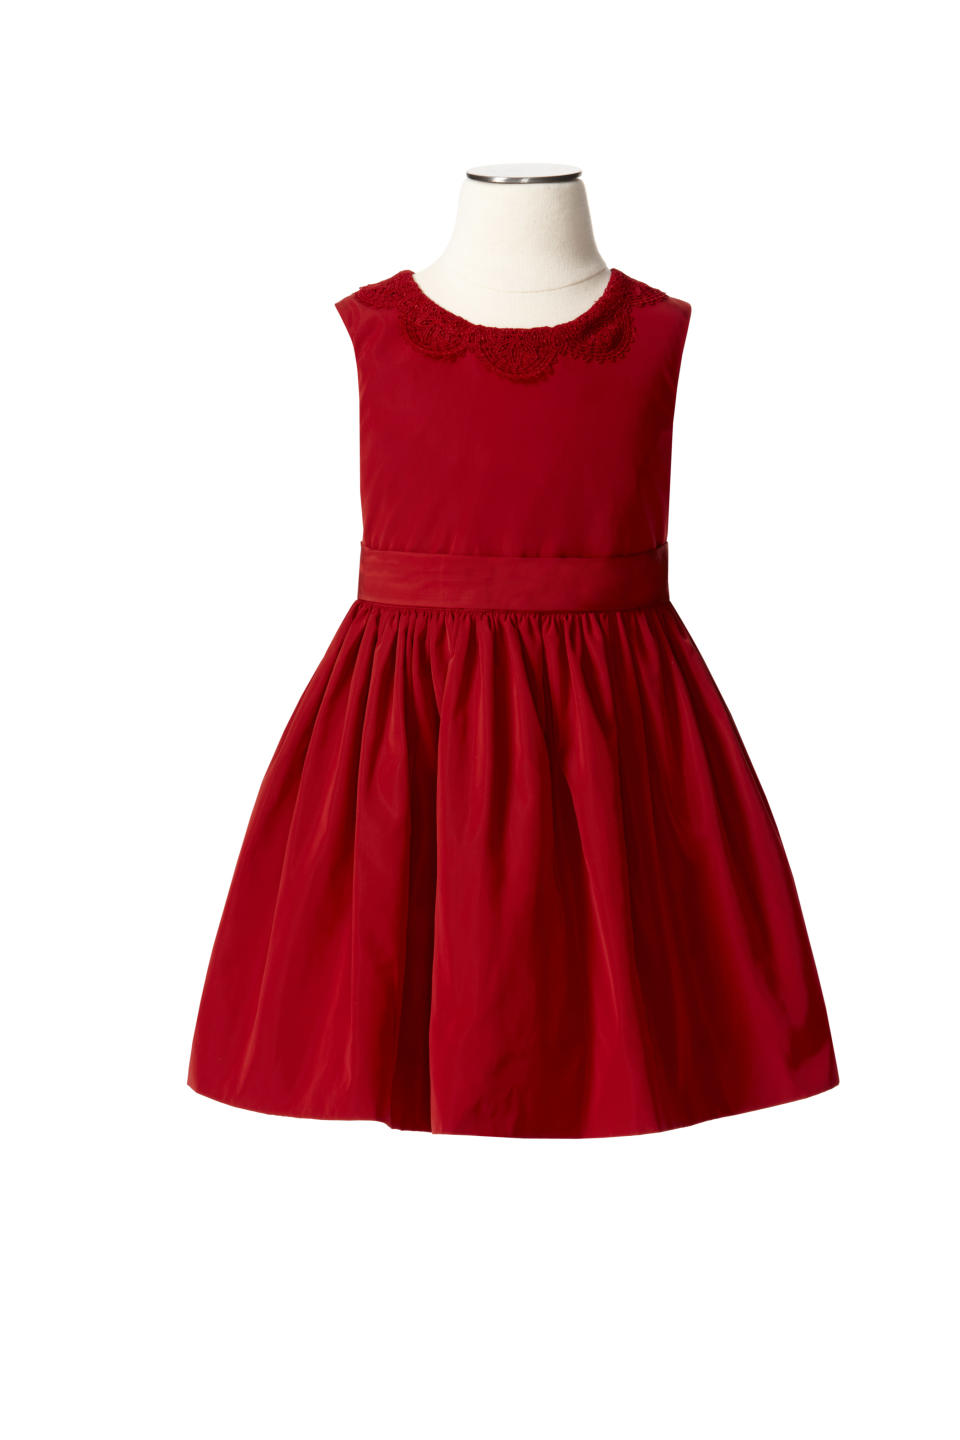 <b>Jason Wu for Target + Neiman Marcus Girl's Solid Dress </b><br><br> Price: $59.99<br><br> Sizes: 12M-5T<br><br> For the first time ever, Jason Wu has designed for girls, creating two little girl's dresses for the collaboration. <br><br>